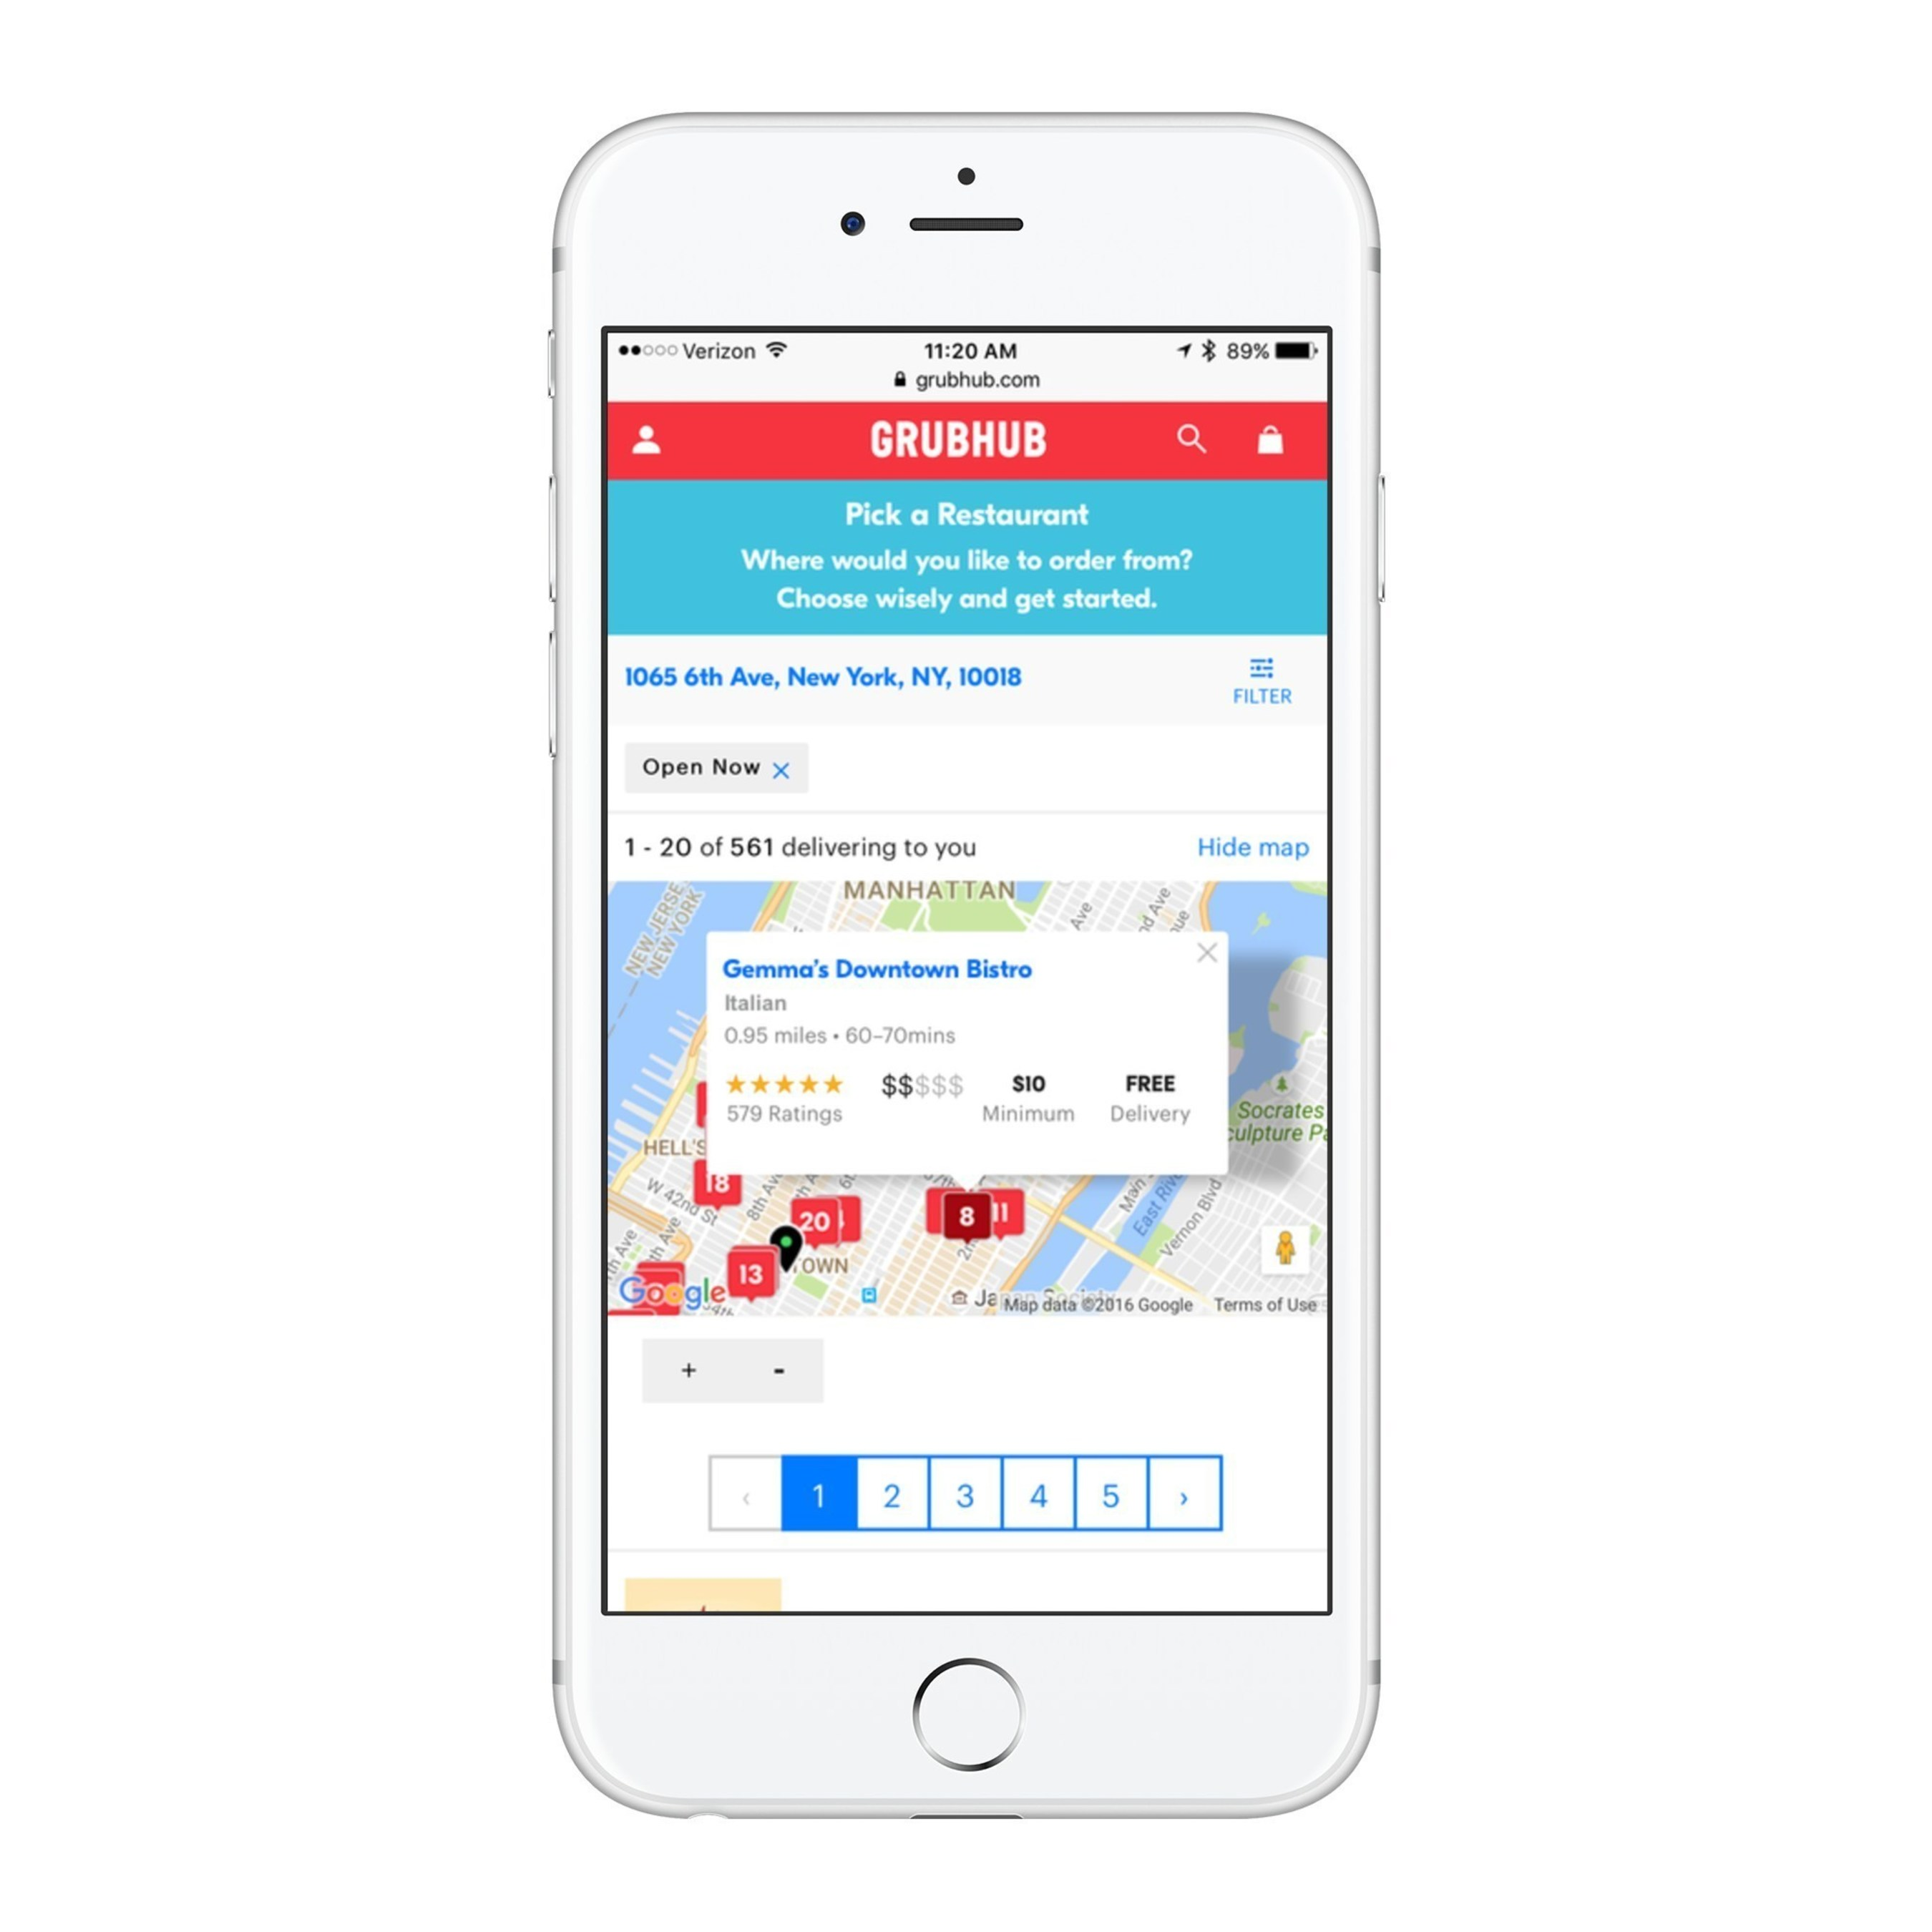 Map Based Search Feature on Grubhub Mobile Web